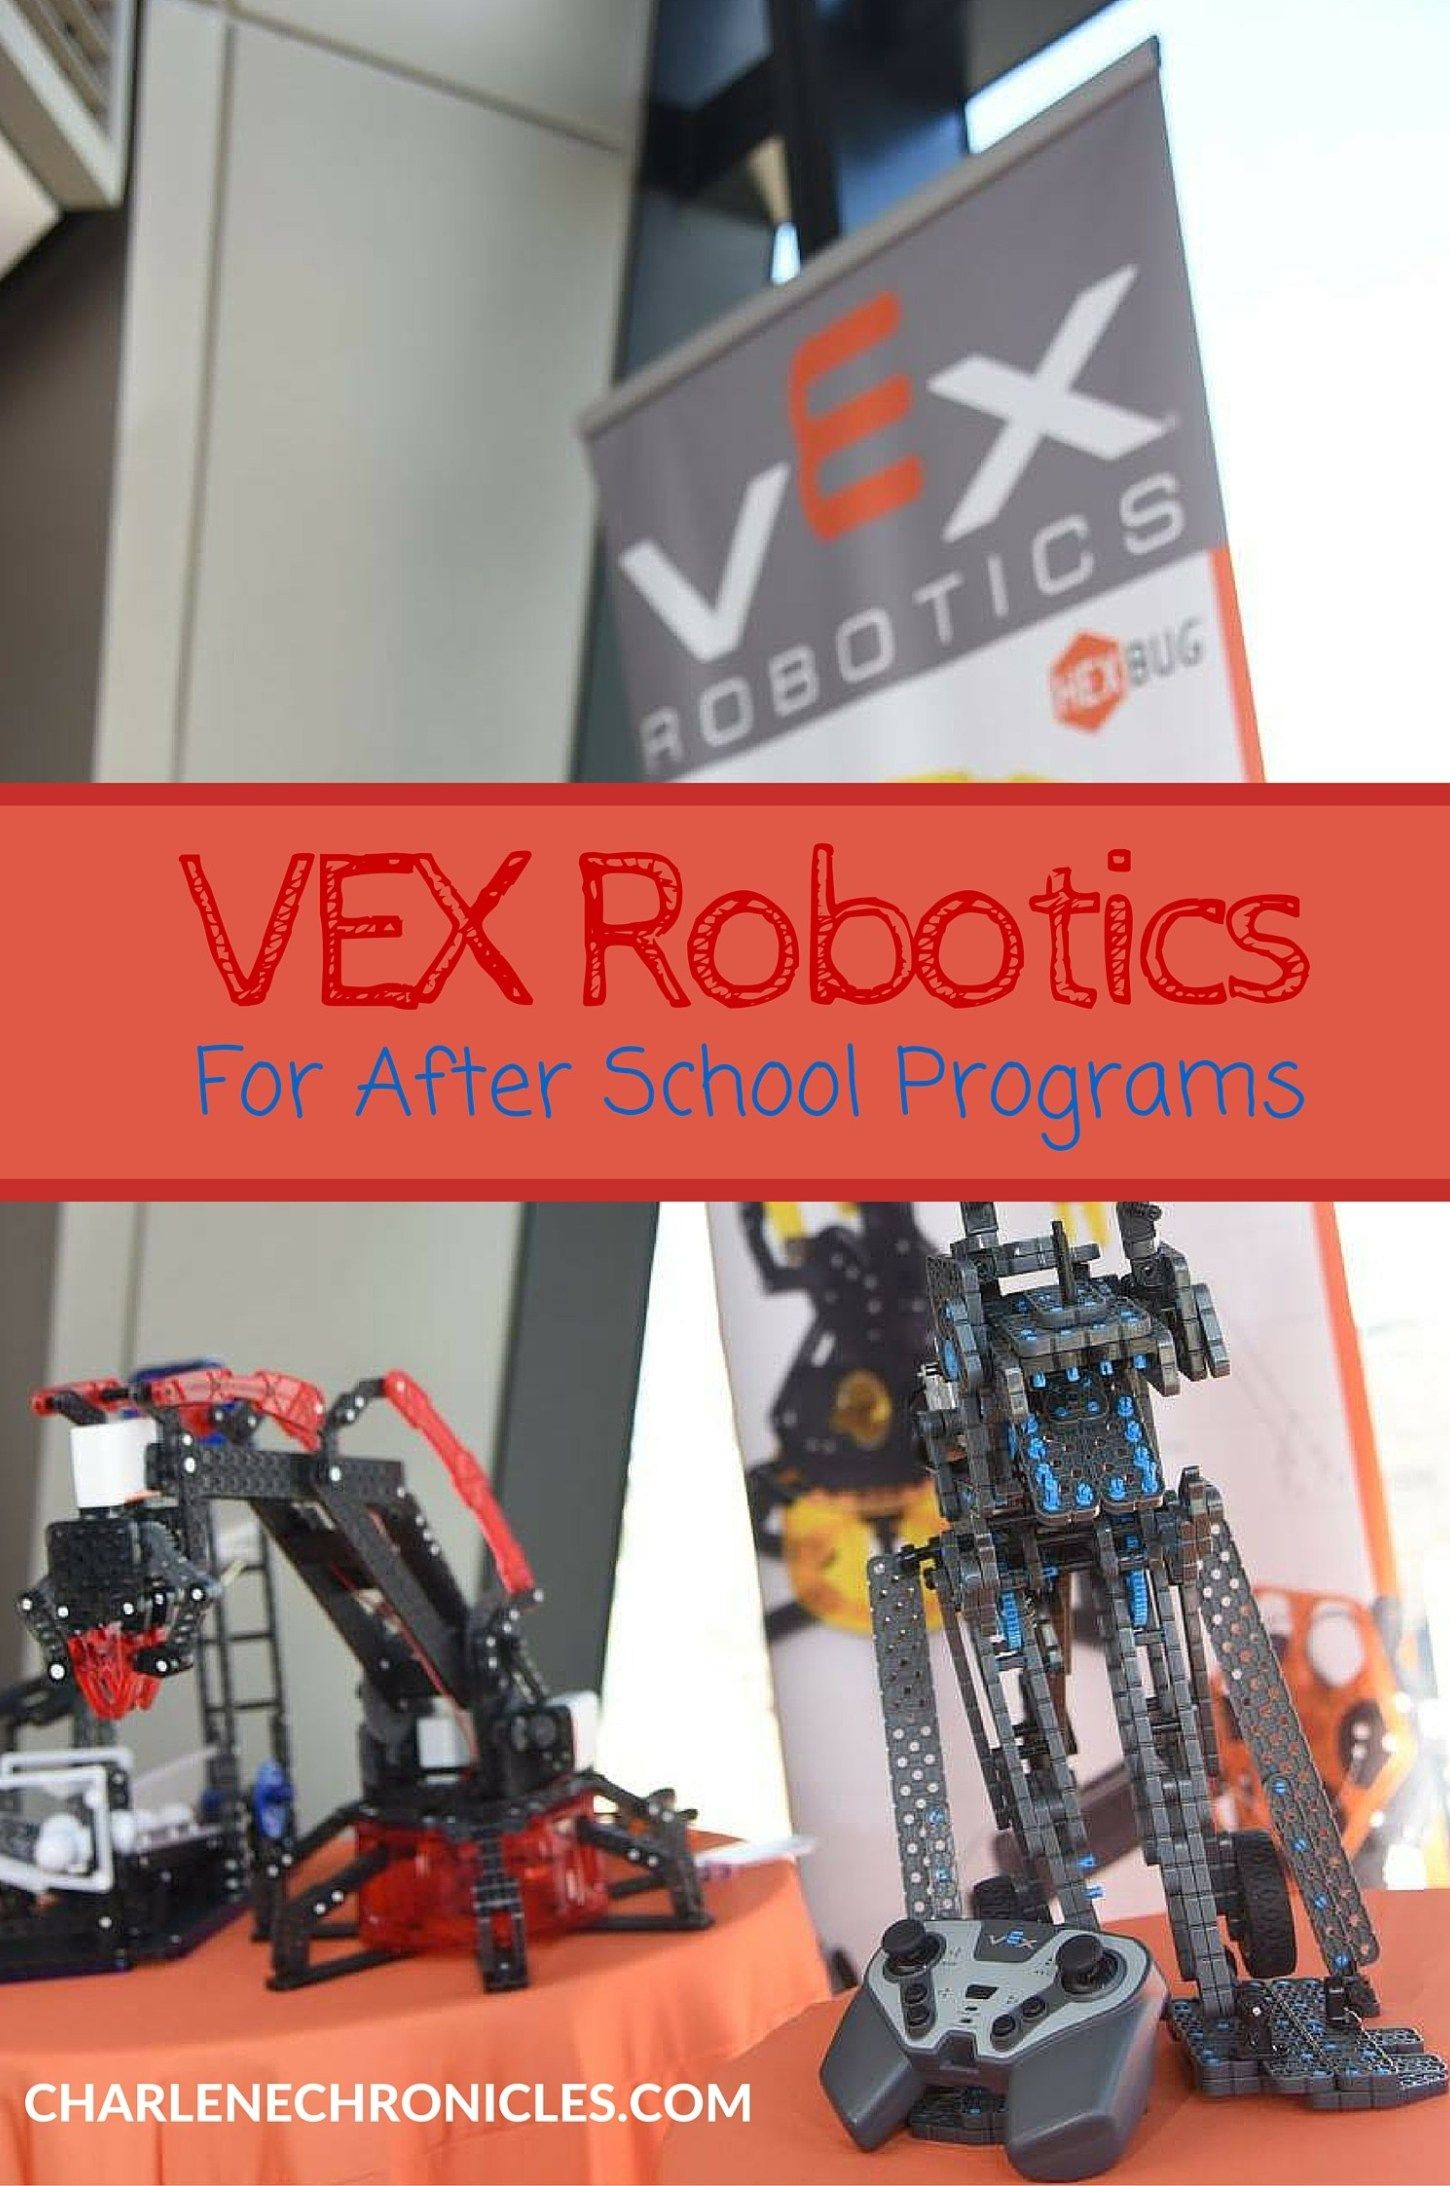 VEX Robotics in After School Programs is part of Vex robotics, Teaching robotics, Educational robots, Robot programming, After school program, School programs - VEX Robotics offers schools and kids the opportunity to develop STEM with competitions, a robust curriculum and at home or at school construction sets